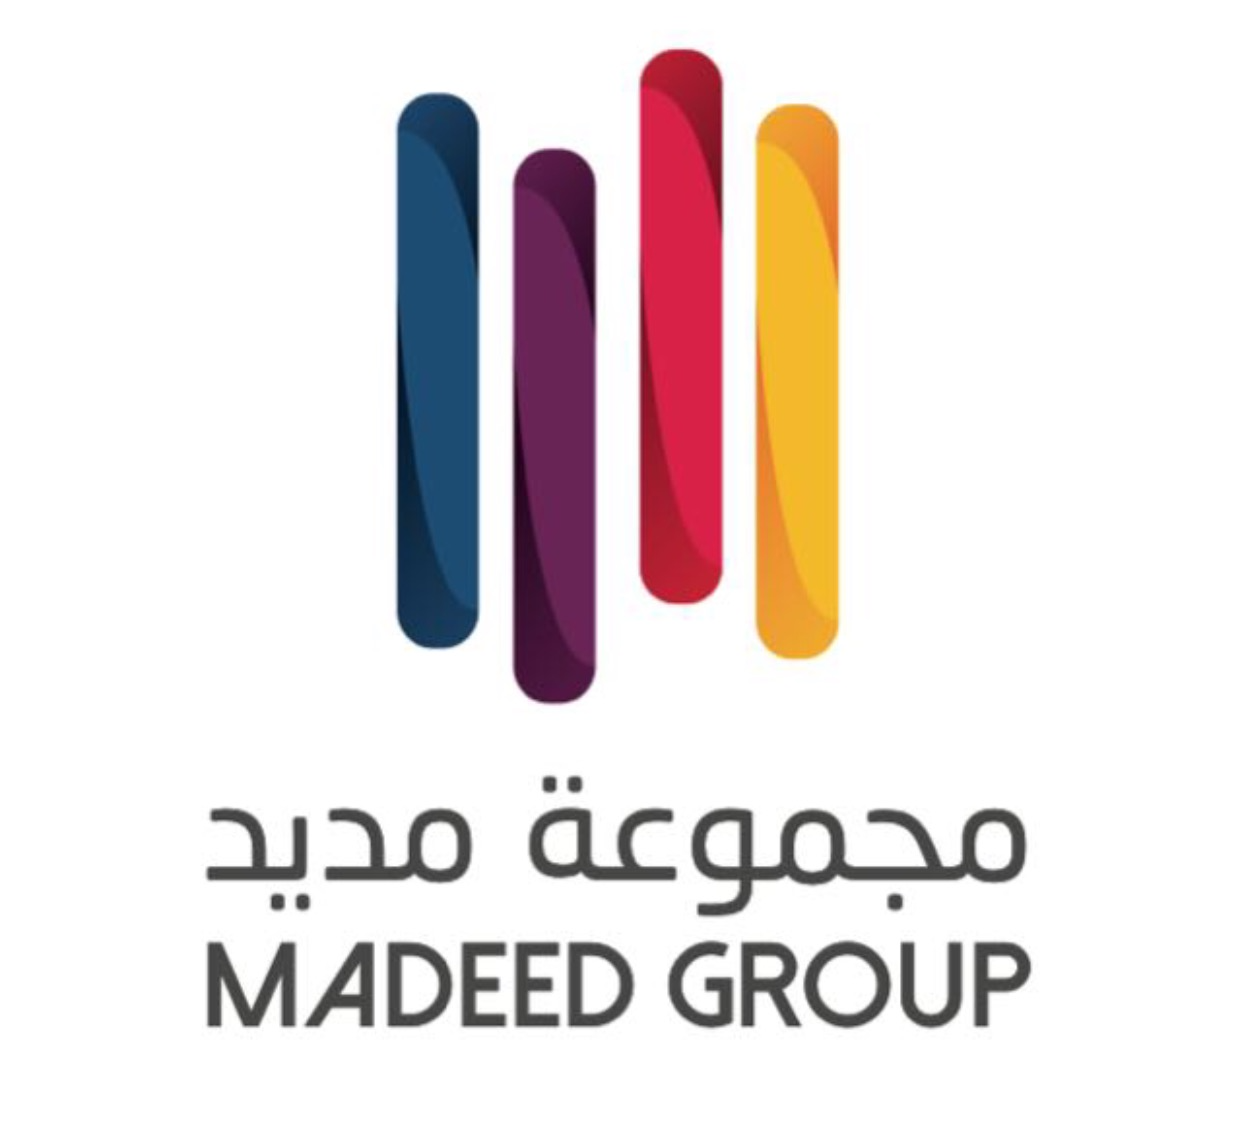 Madeed Group